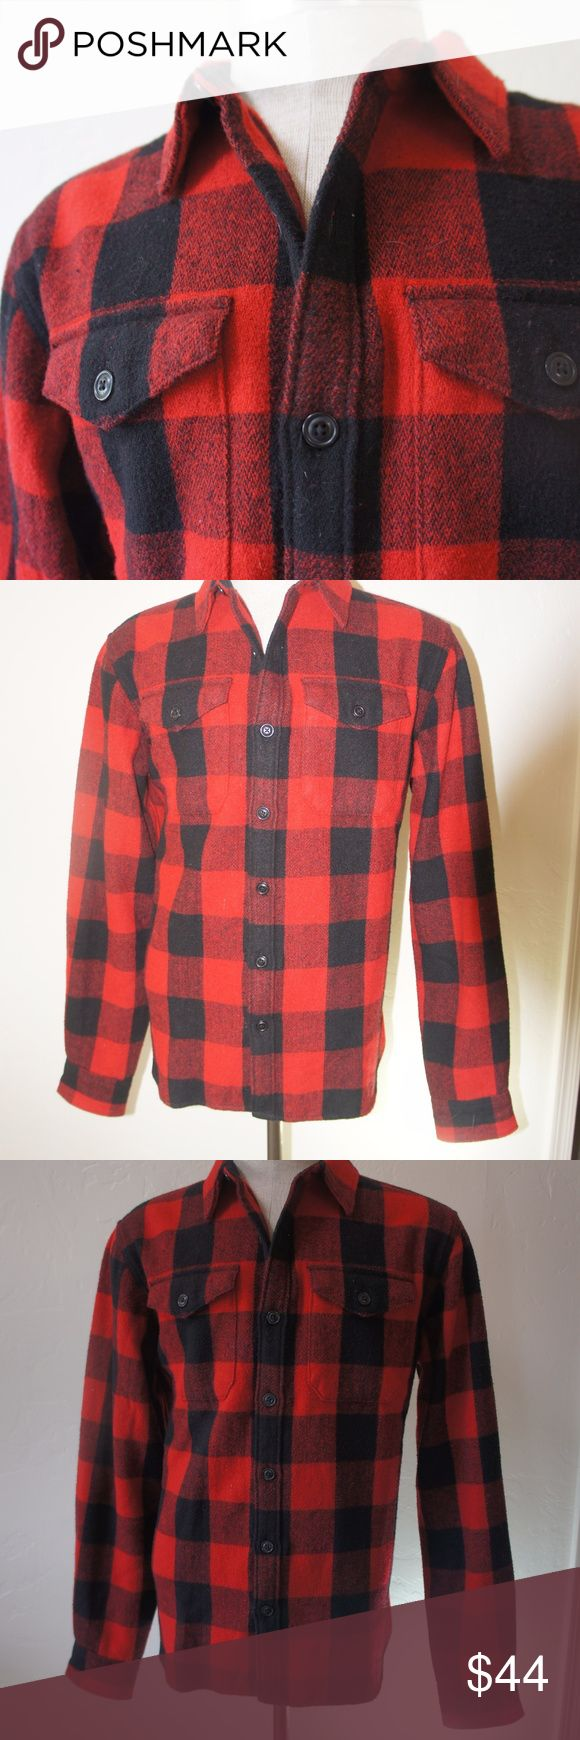 Old Navy wool blend plaid shirt jacket Large NWOT plaid wool shirt jacket.  Two chest pockets for your smokes and chainsaw oil, rugged design and feel all the way around.  Better enjoy wool against your bare chest or better yet, just put a undershirt on with this bad boy. Old Navy Jackets & Coats Lightweight & Shirt Jackets